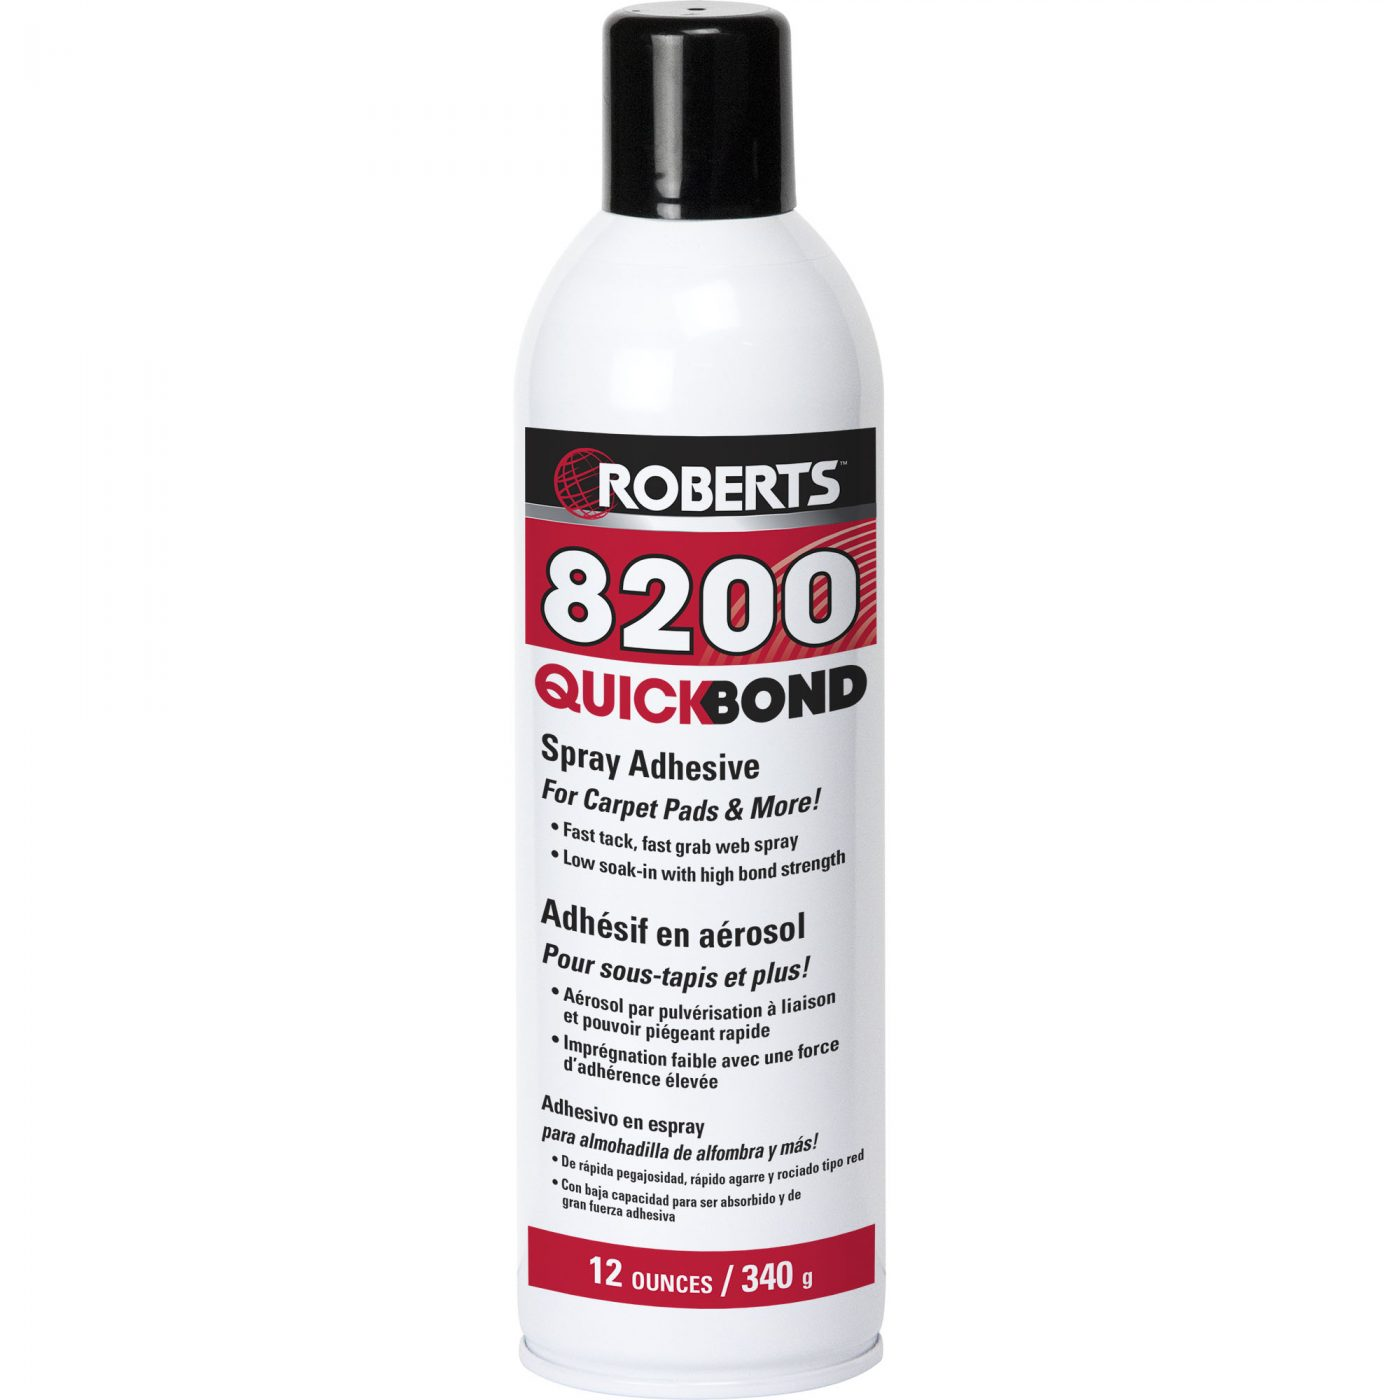 QUICK BOND Spray Adhesive